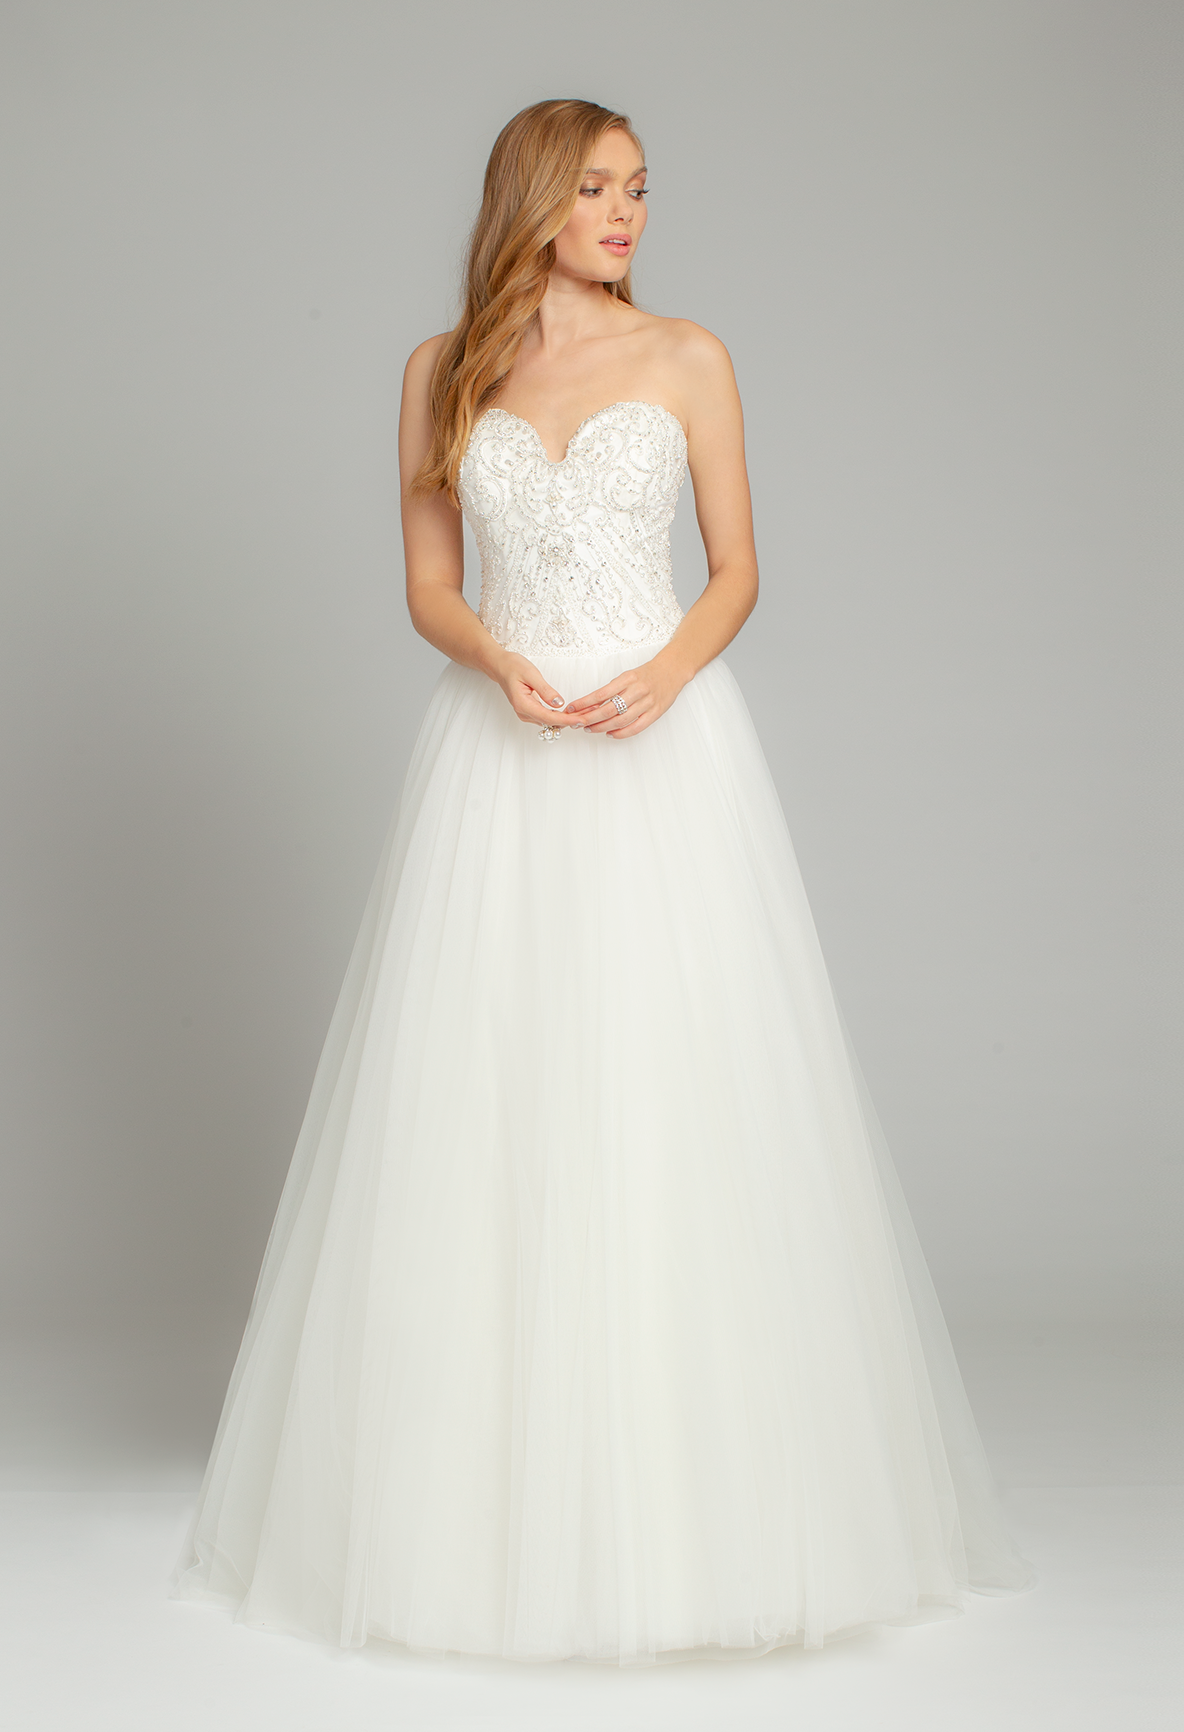 This beaded bustier ball gown wedding dress will have you